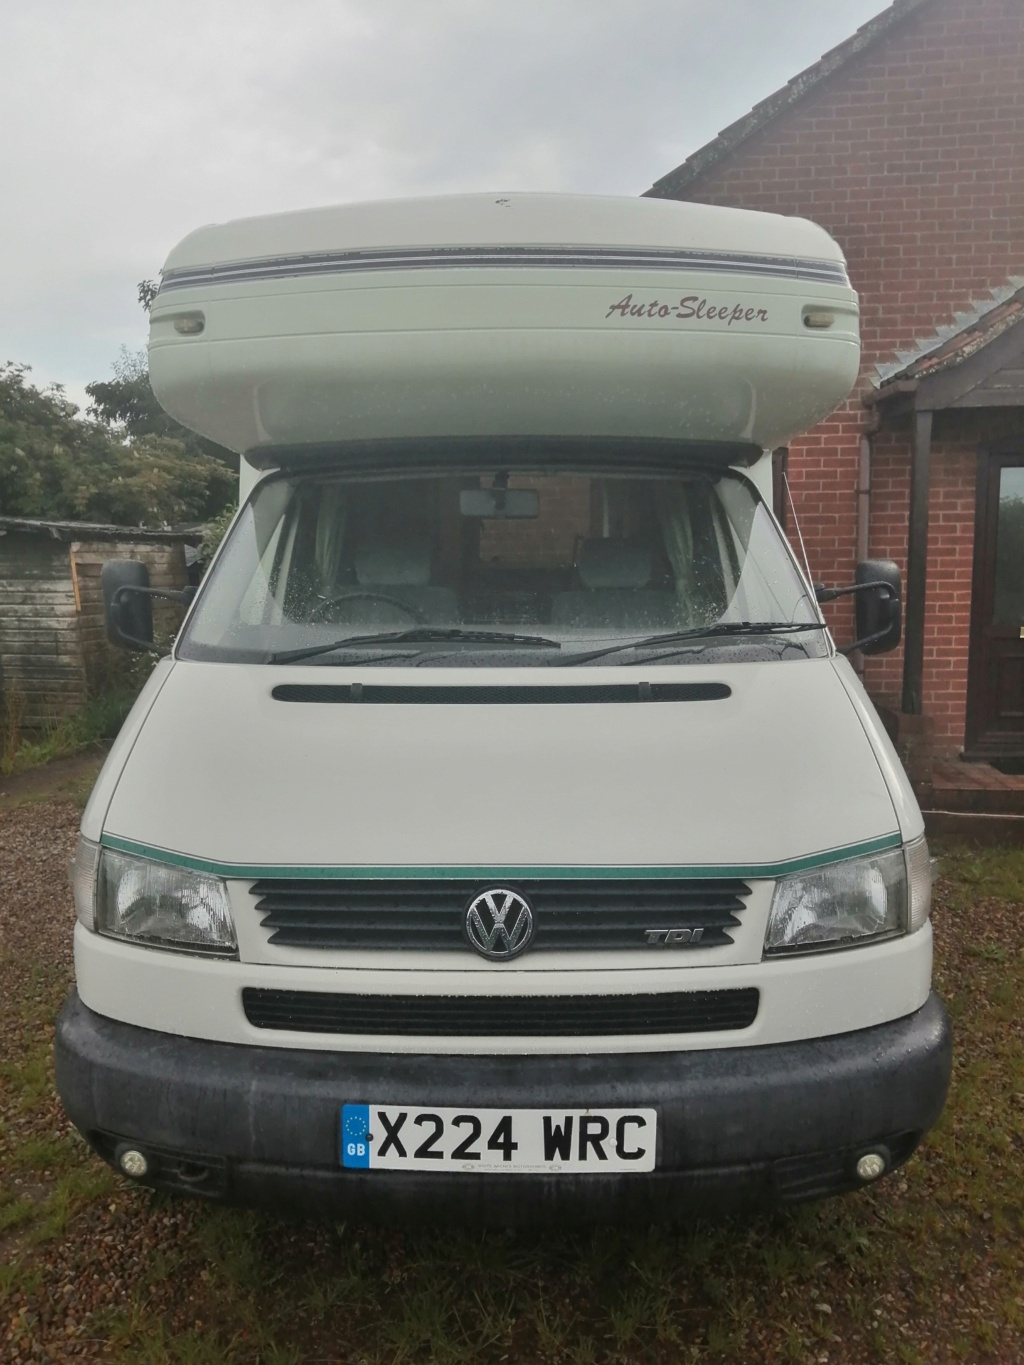 2000 Gatcombe for sale. Img_2012